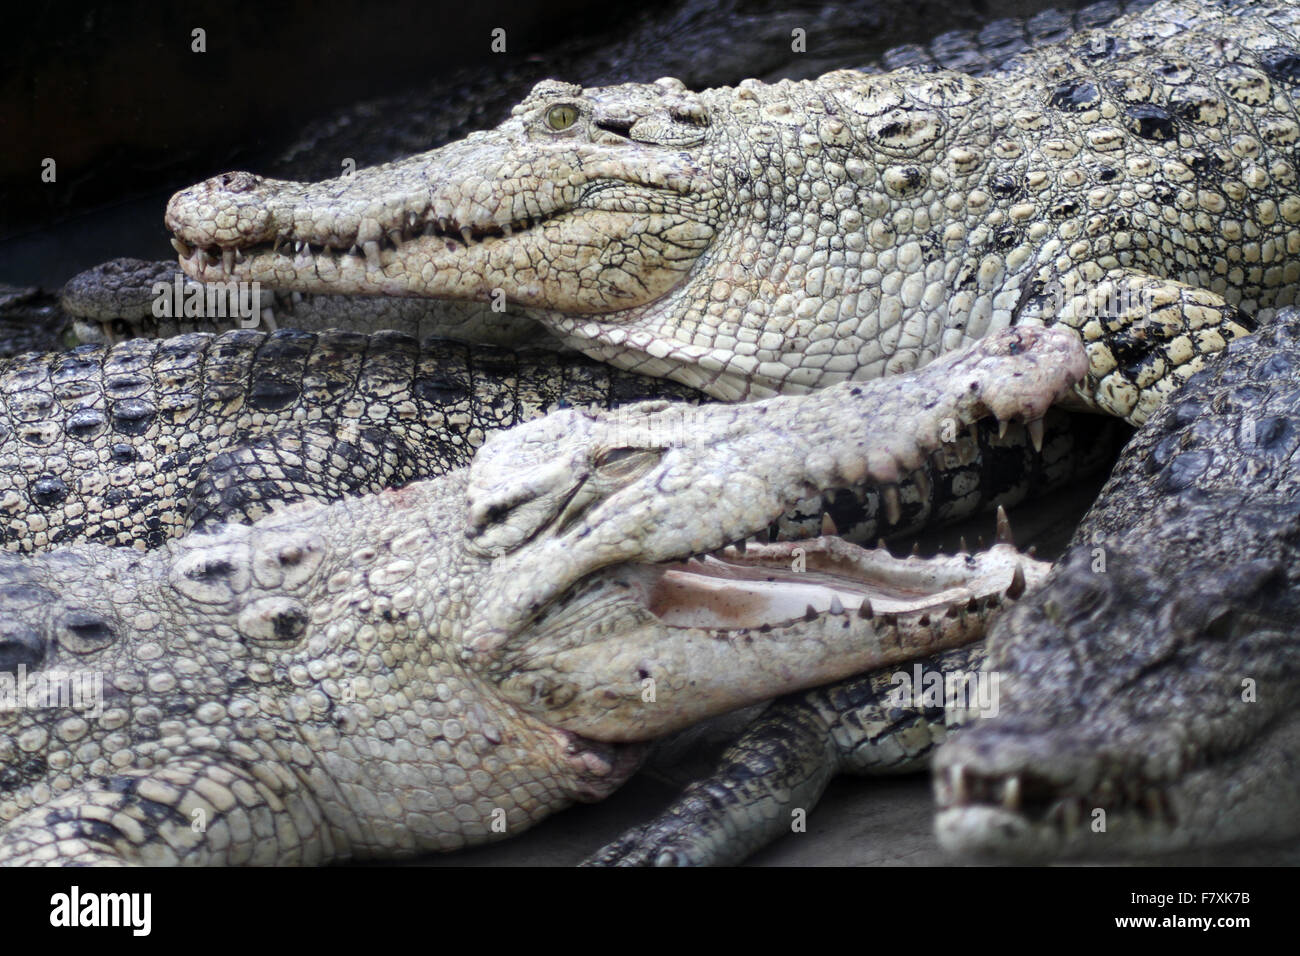 Medan, North Sumatra, Indonesia. 3rd Dec, 2015. Crocodiles congregate at feeding time at the crocodile farm. The - Stock Image